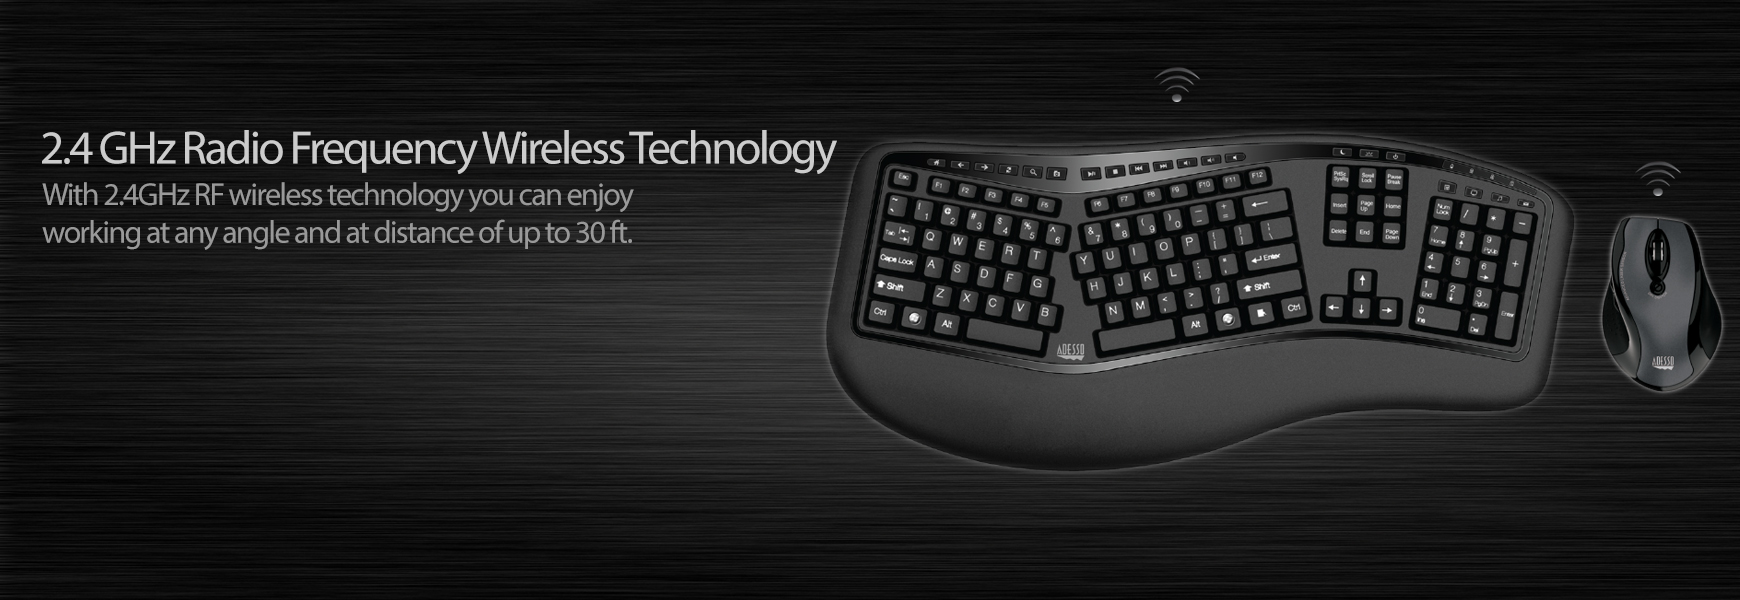 Mechanical Type Keyboard -The perfect keyboard for users that love efficiency with a retro design.